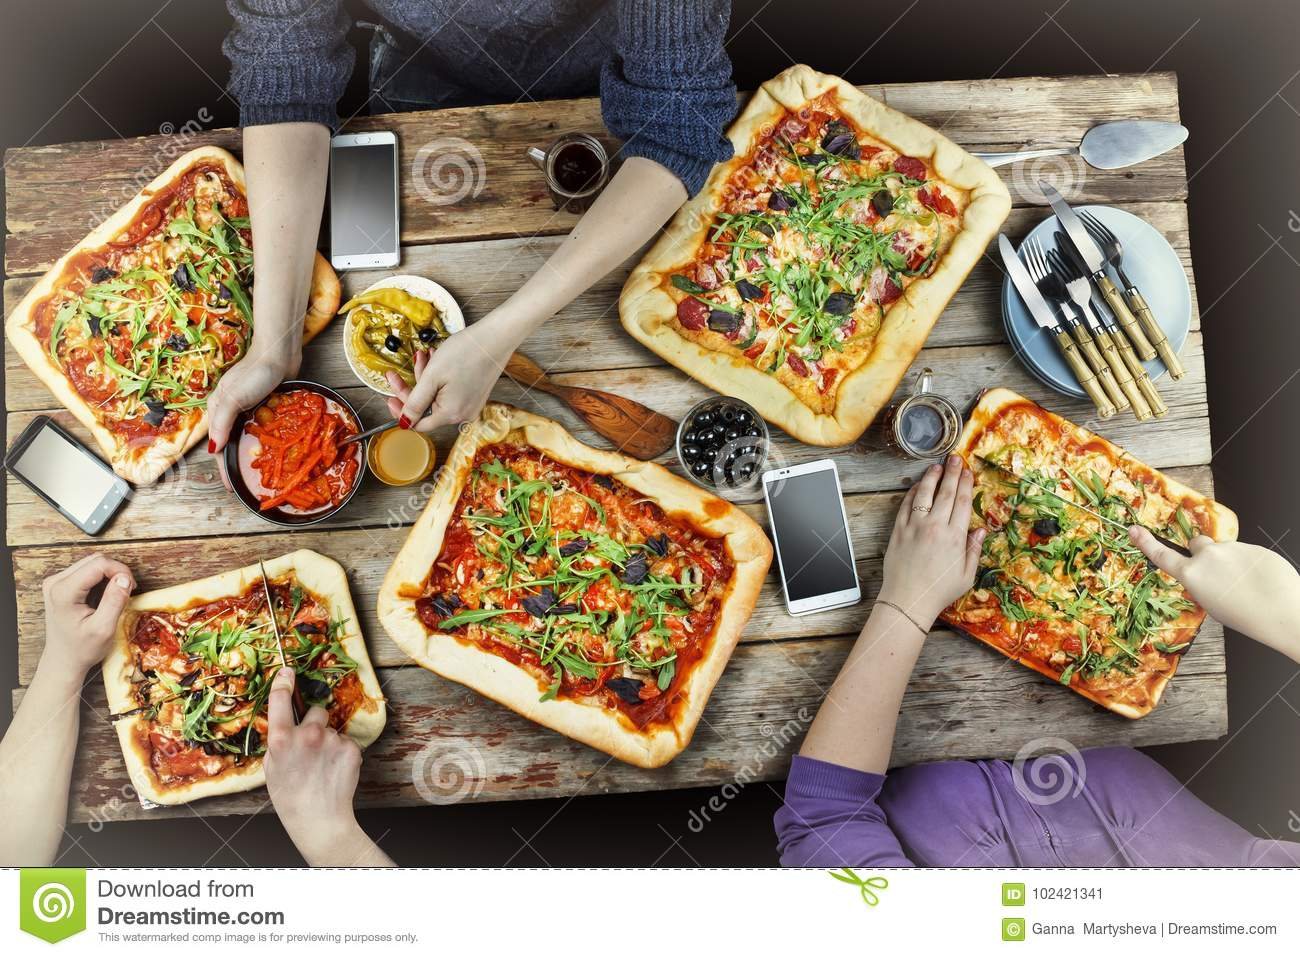 Cutting pizza. Domestic food and homemade pizza. Enjoying dinner with friends. Top view of group of people having dinner together